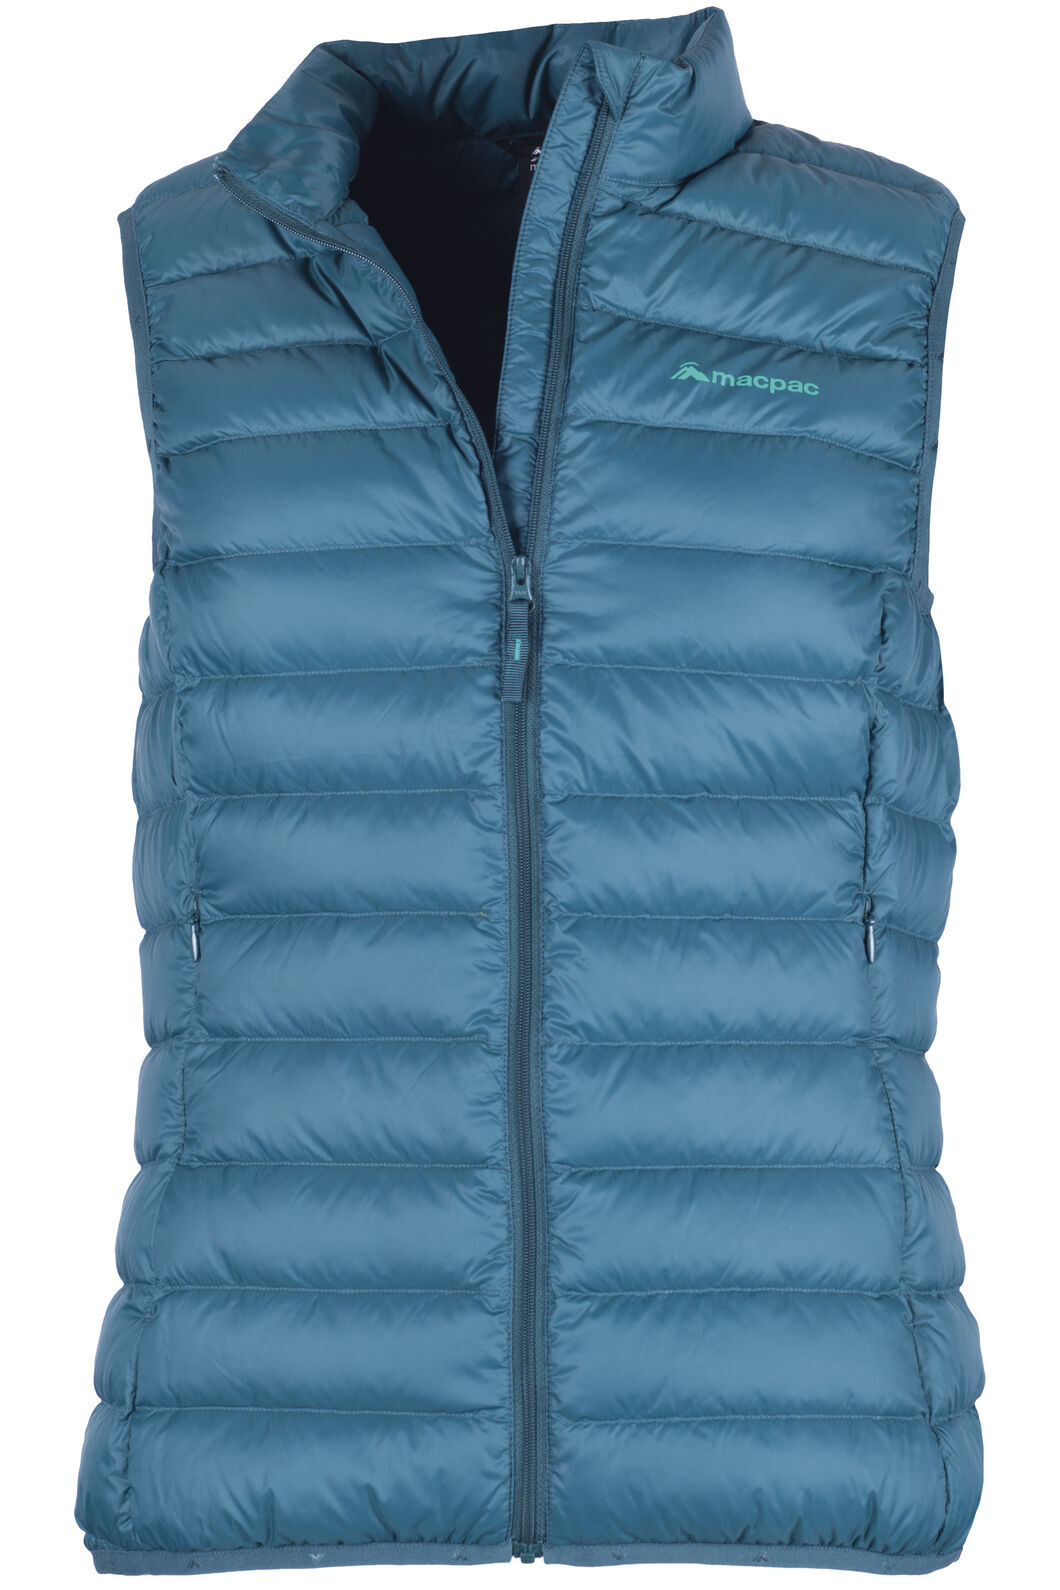 Uber Light Down Vest - Women's, Deep Teal, hi-res